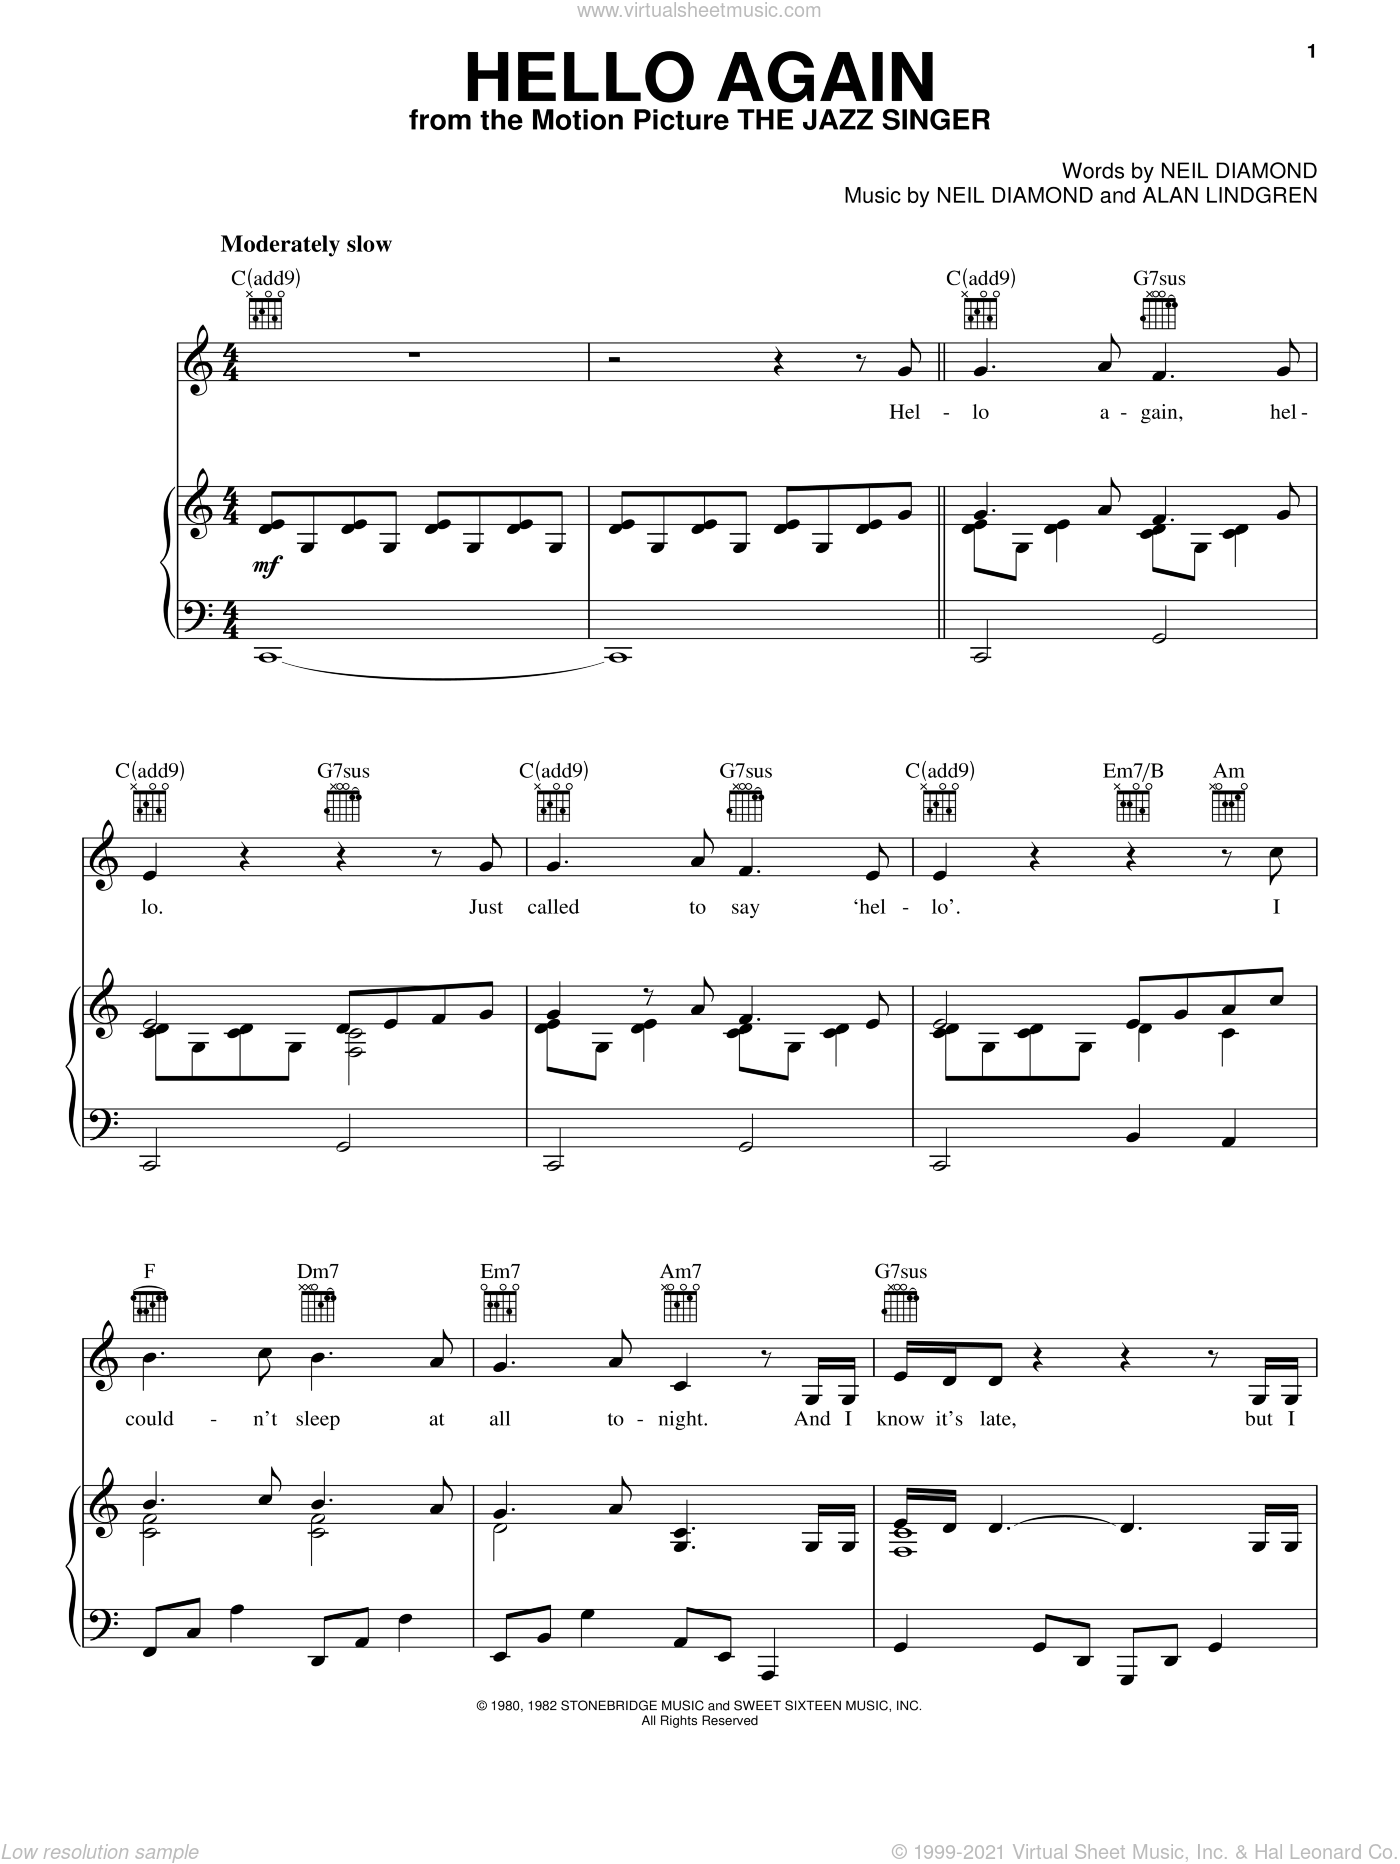 Hello Again sheet music for voice, piano or guitar by Neil Diamond and Alan Lindgren, intermediate skill level